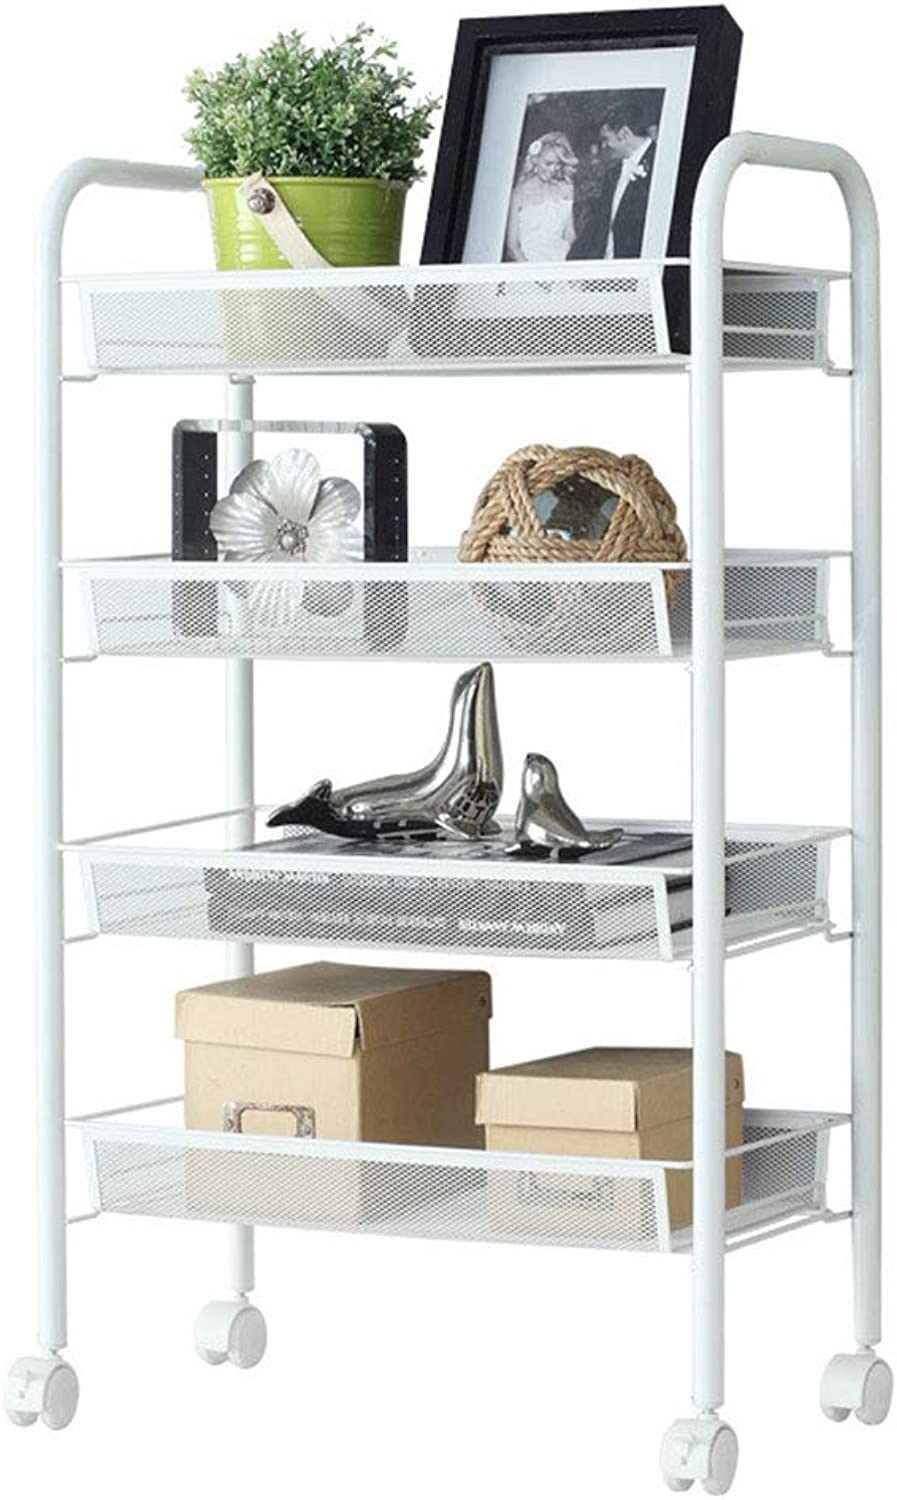 Slidable Shelf Strengthen Stable Floors Kitchen Counter and Cabinet Shelf Steel Carefully Polished Sturdy and Safety